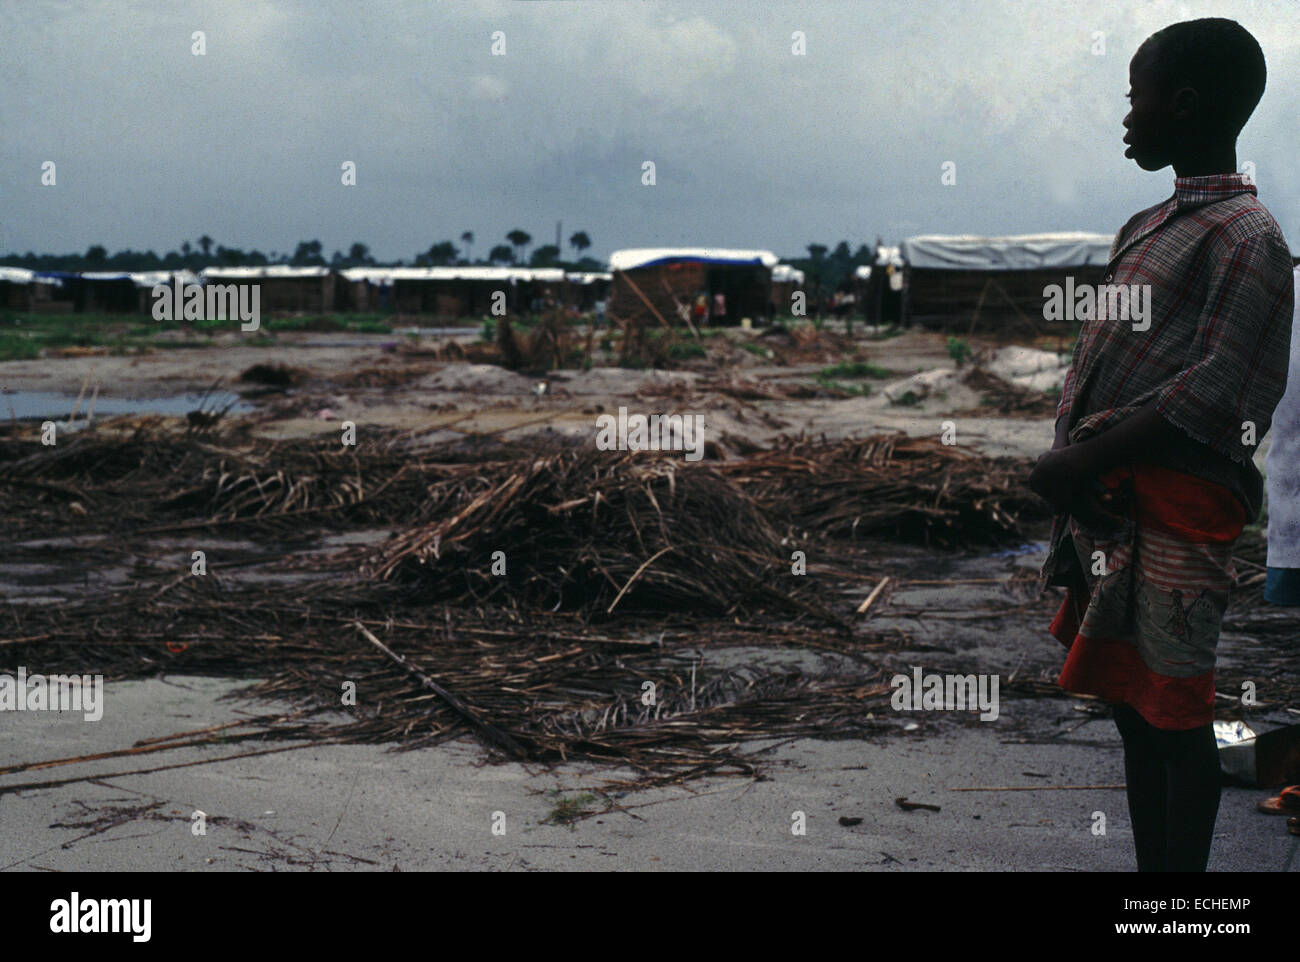 VOA-1 Refugee camp washed away in storms in Monrovia Liberia 1993 - Stock Image